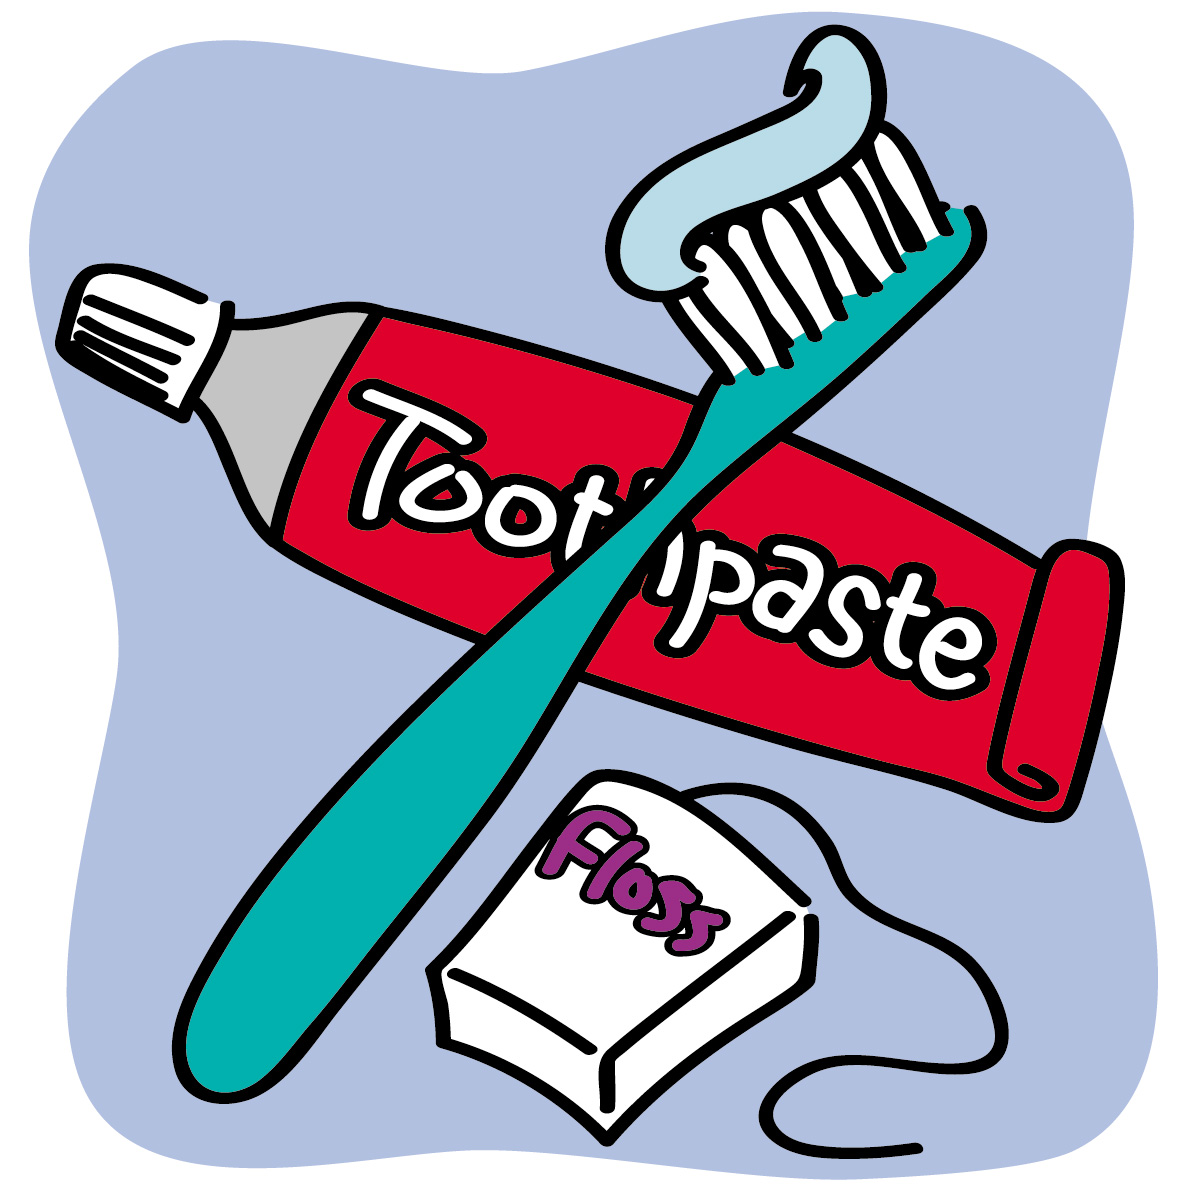 1200x1200 Dental Teeth Images Cartoon Tooth Free Vector For Free Download